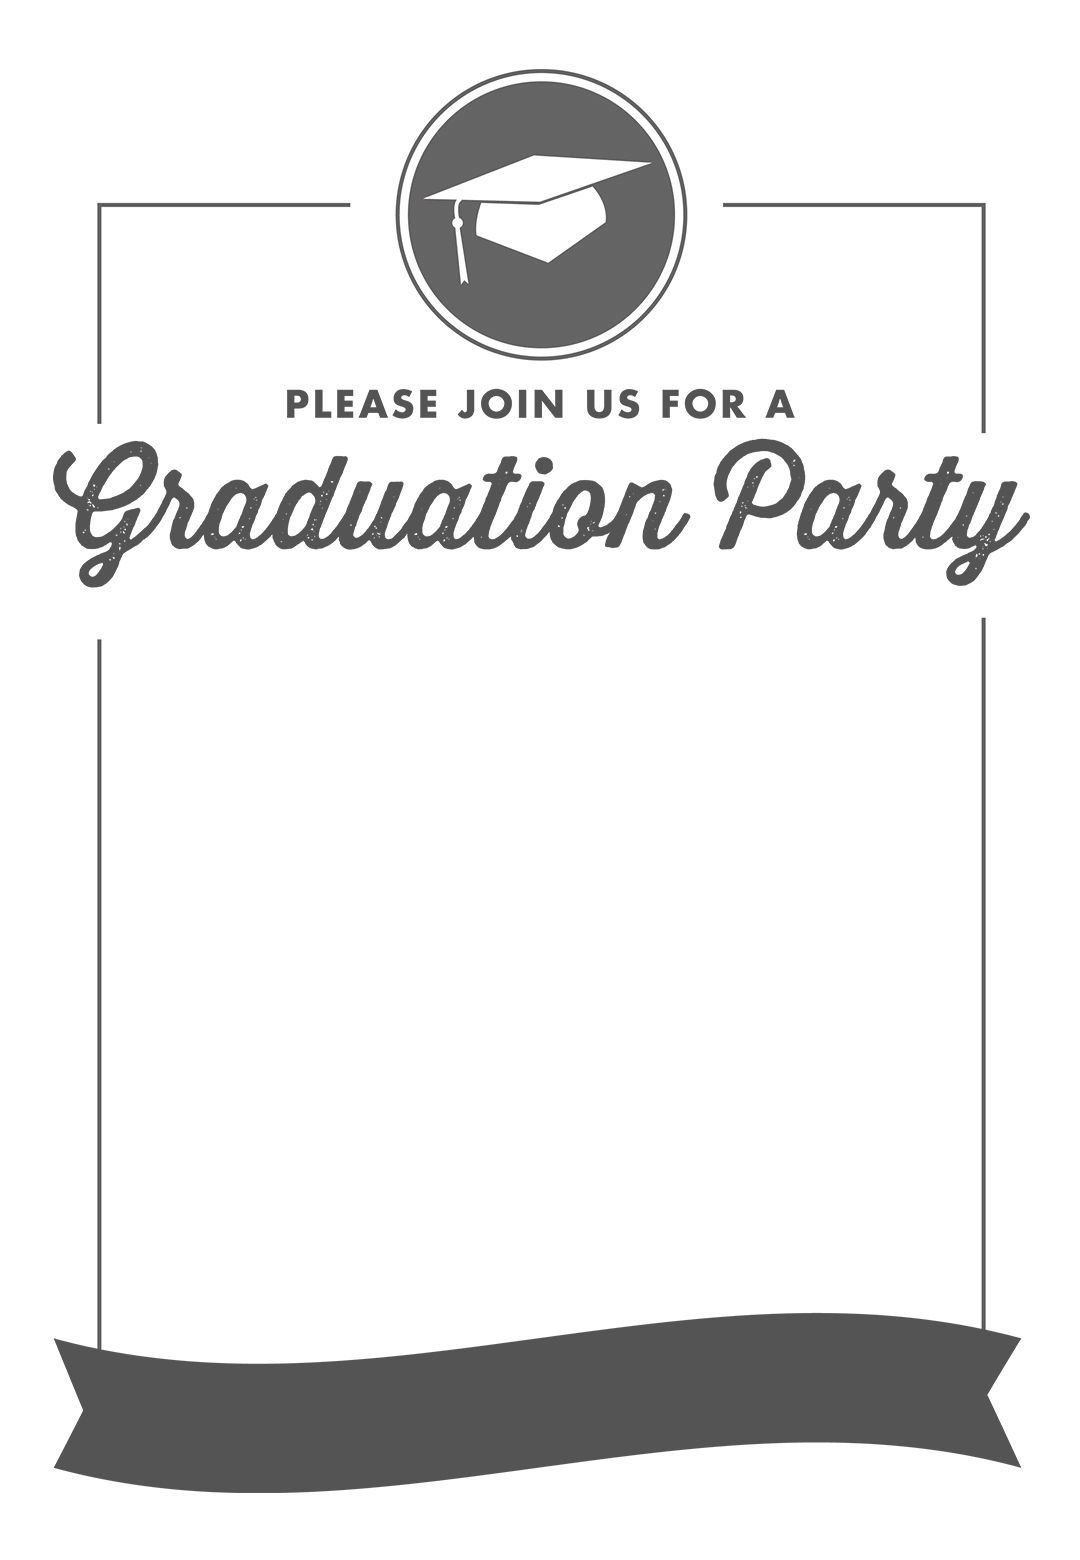 002 Unbelievable Free Graduation Invitation Template Printable High Resolution  Preschool Party KindergartenFull